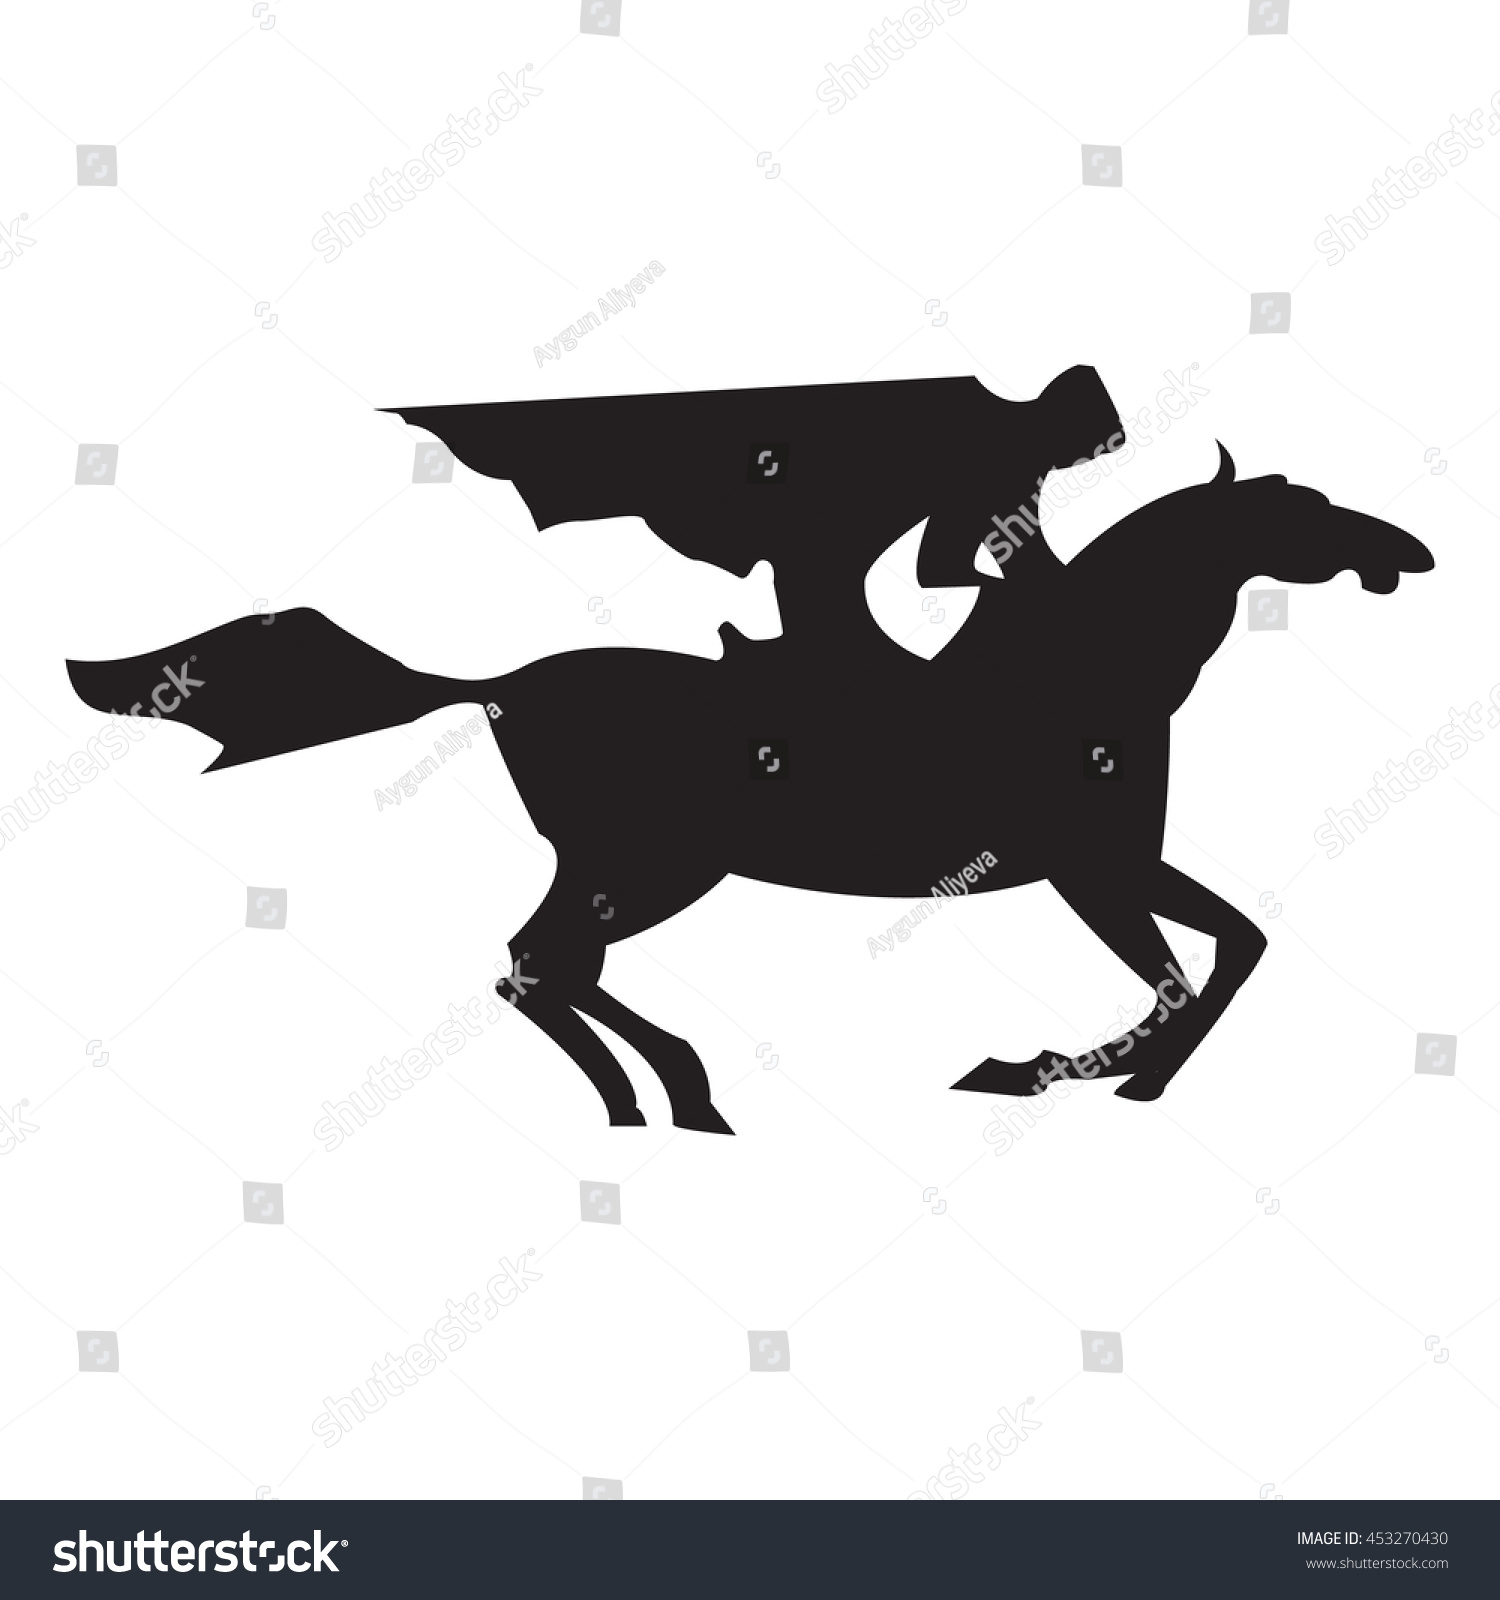 Horse Race Derby Silhouette Of Racing With Jockey On Isolated Background